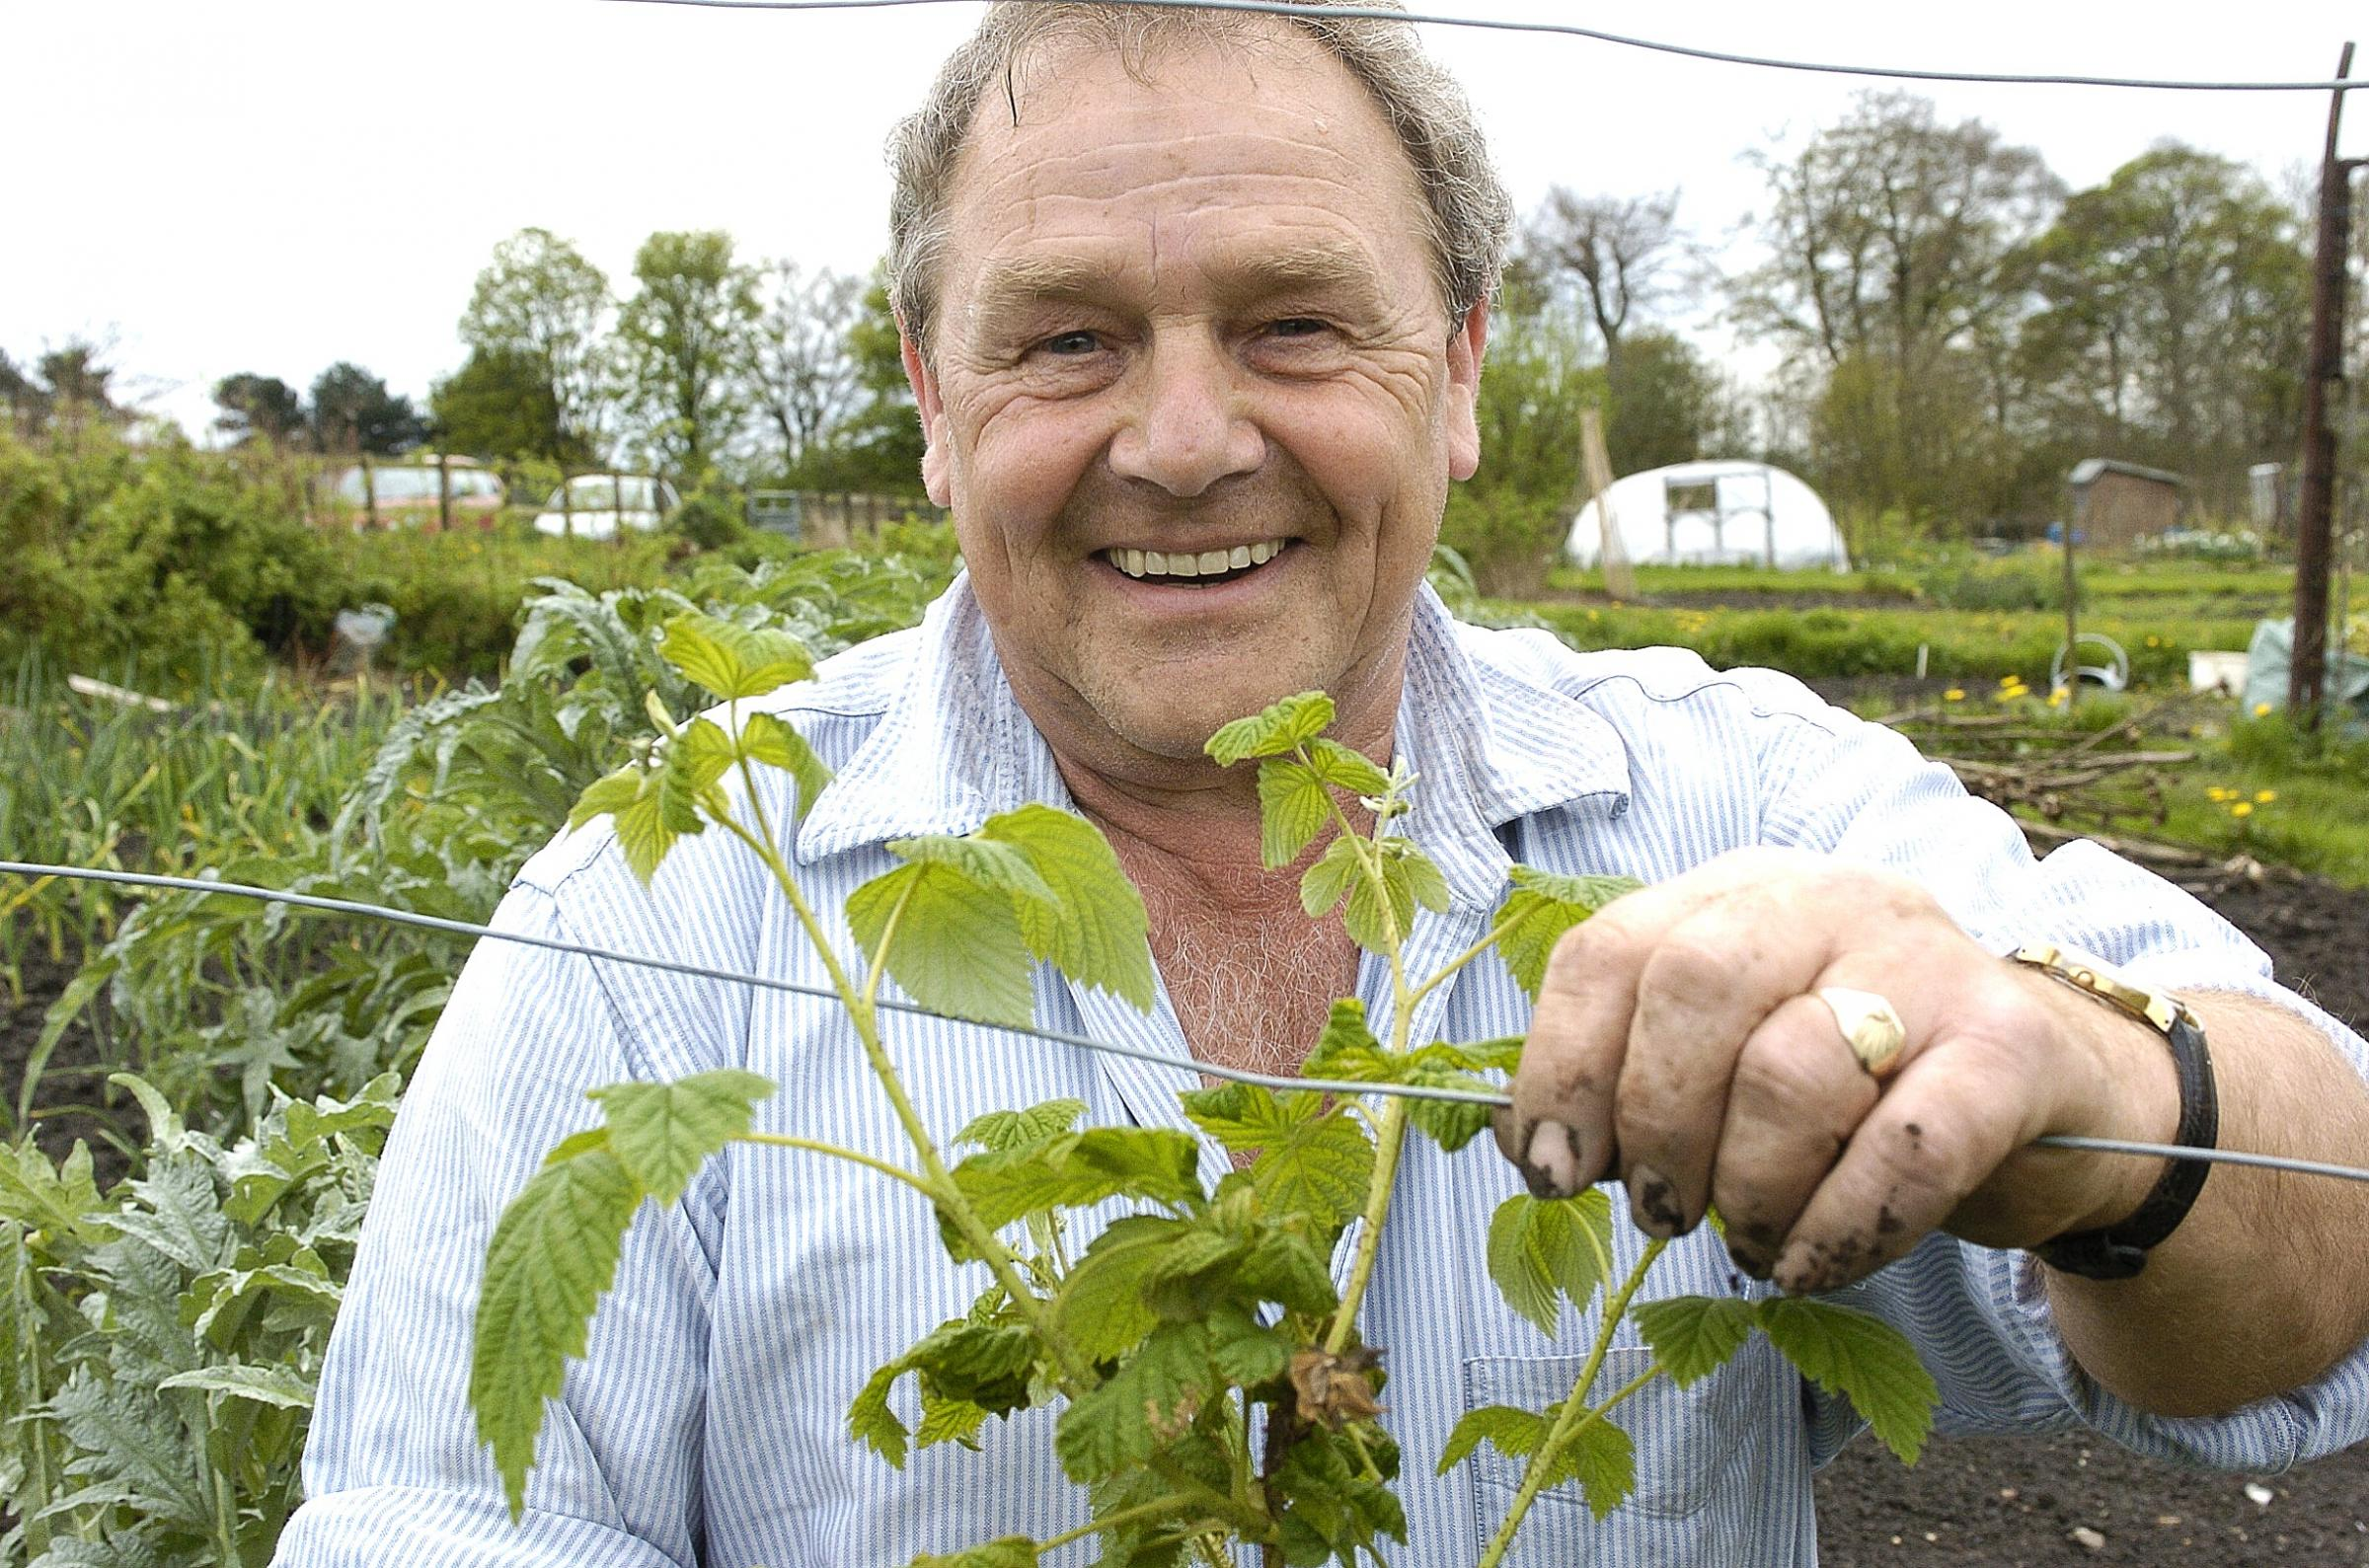 Phil Gomersall tends to an allotment